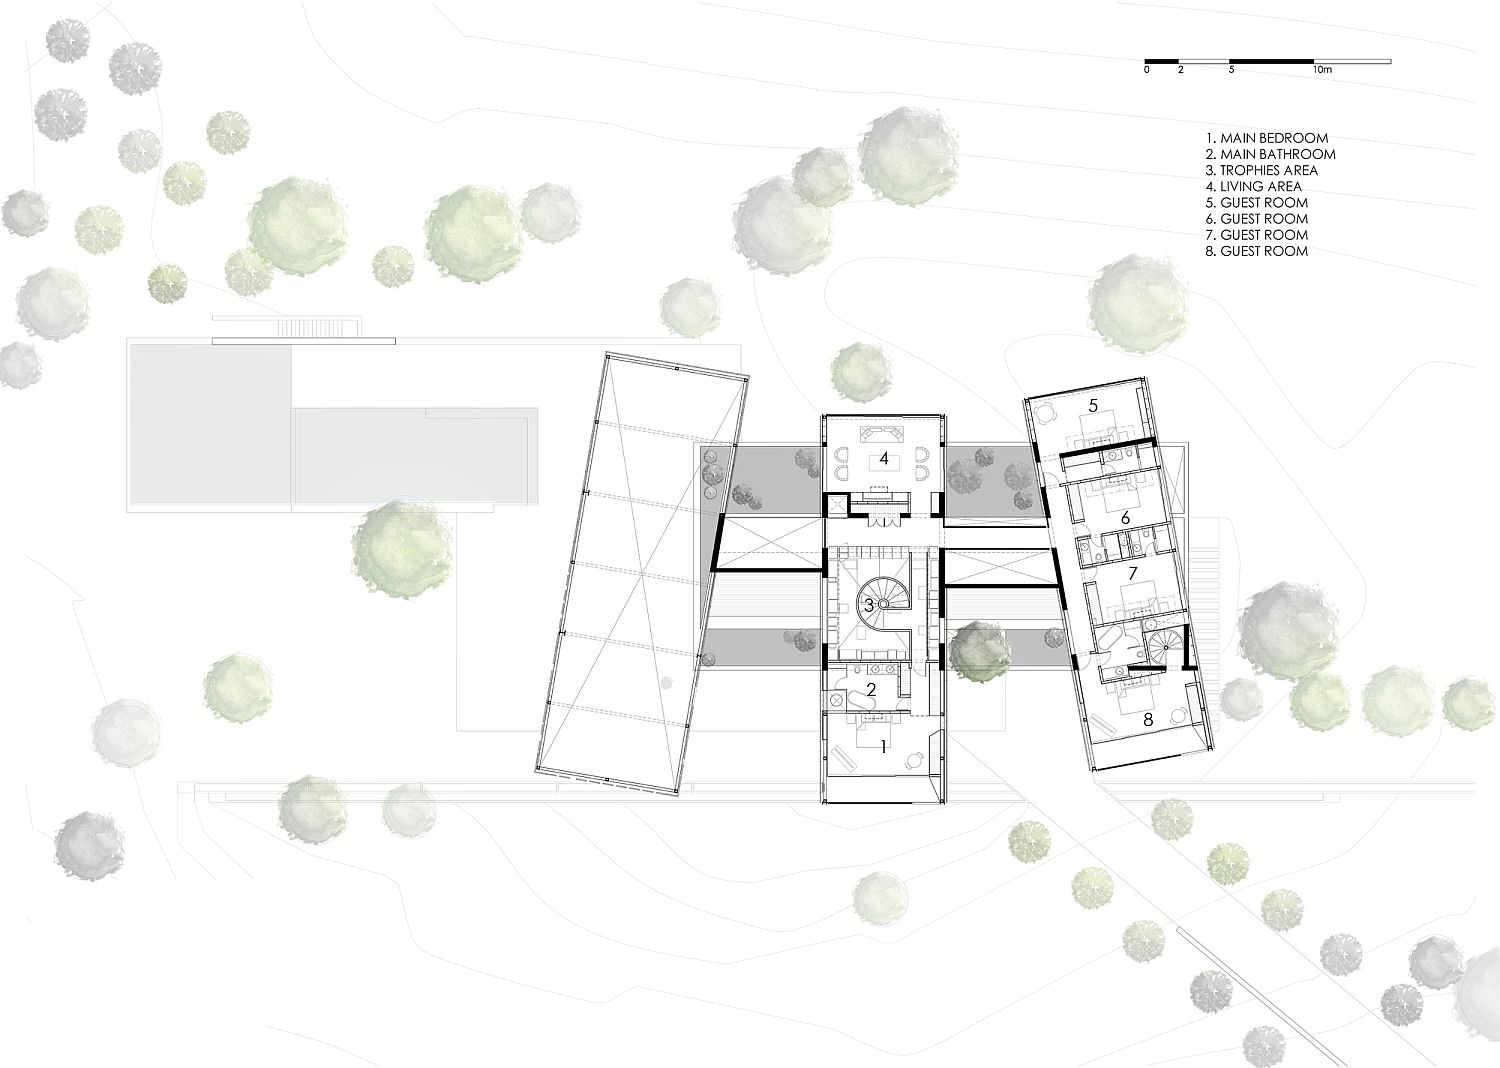 First floor plan of the holiday home on a ranch in Peru